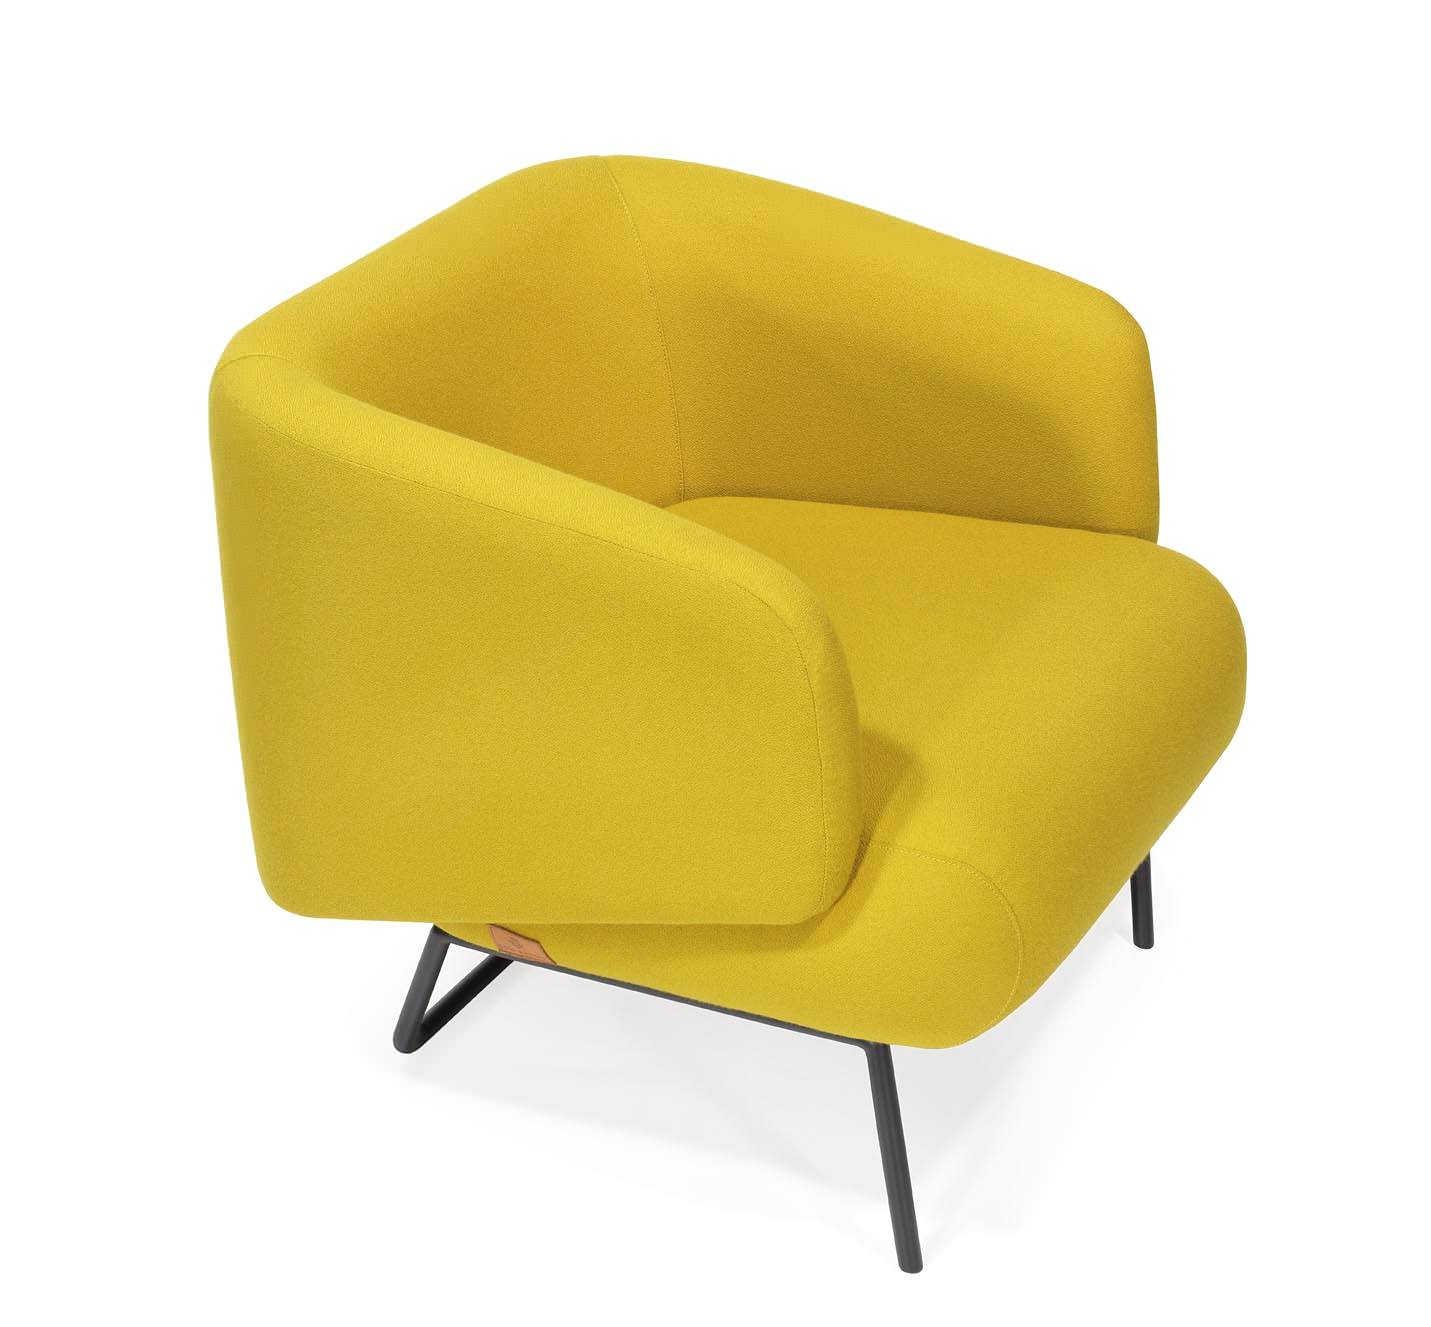 Ambar Chair